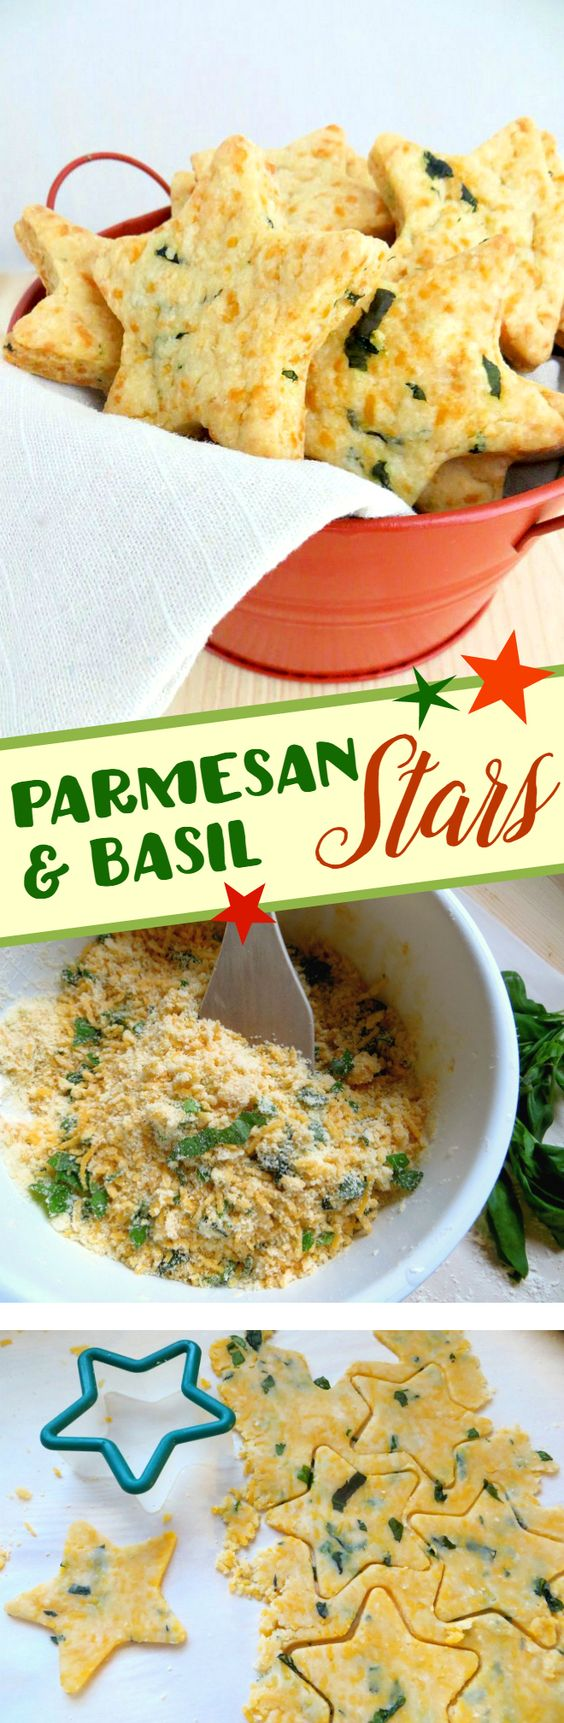 Parmesan & Basil Stars - Great appetizer or snack recipe for 4th of July celebrations!: